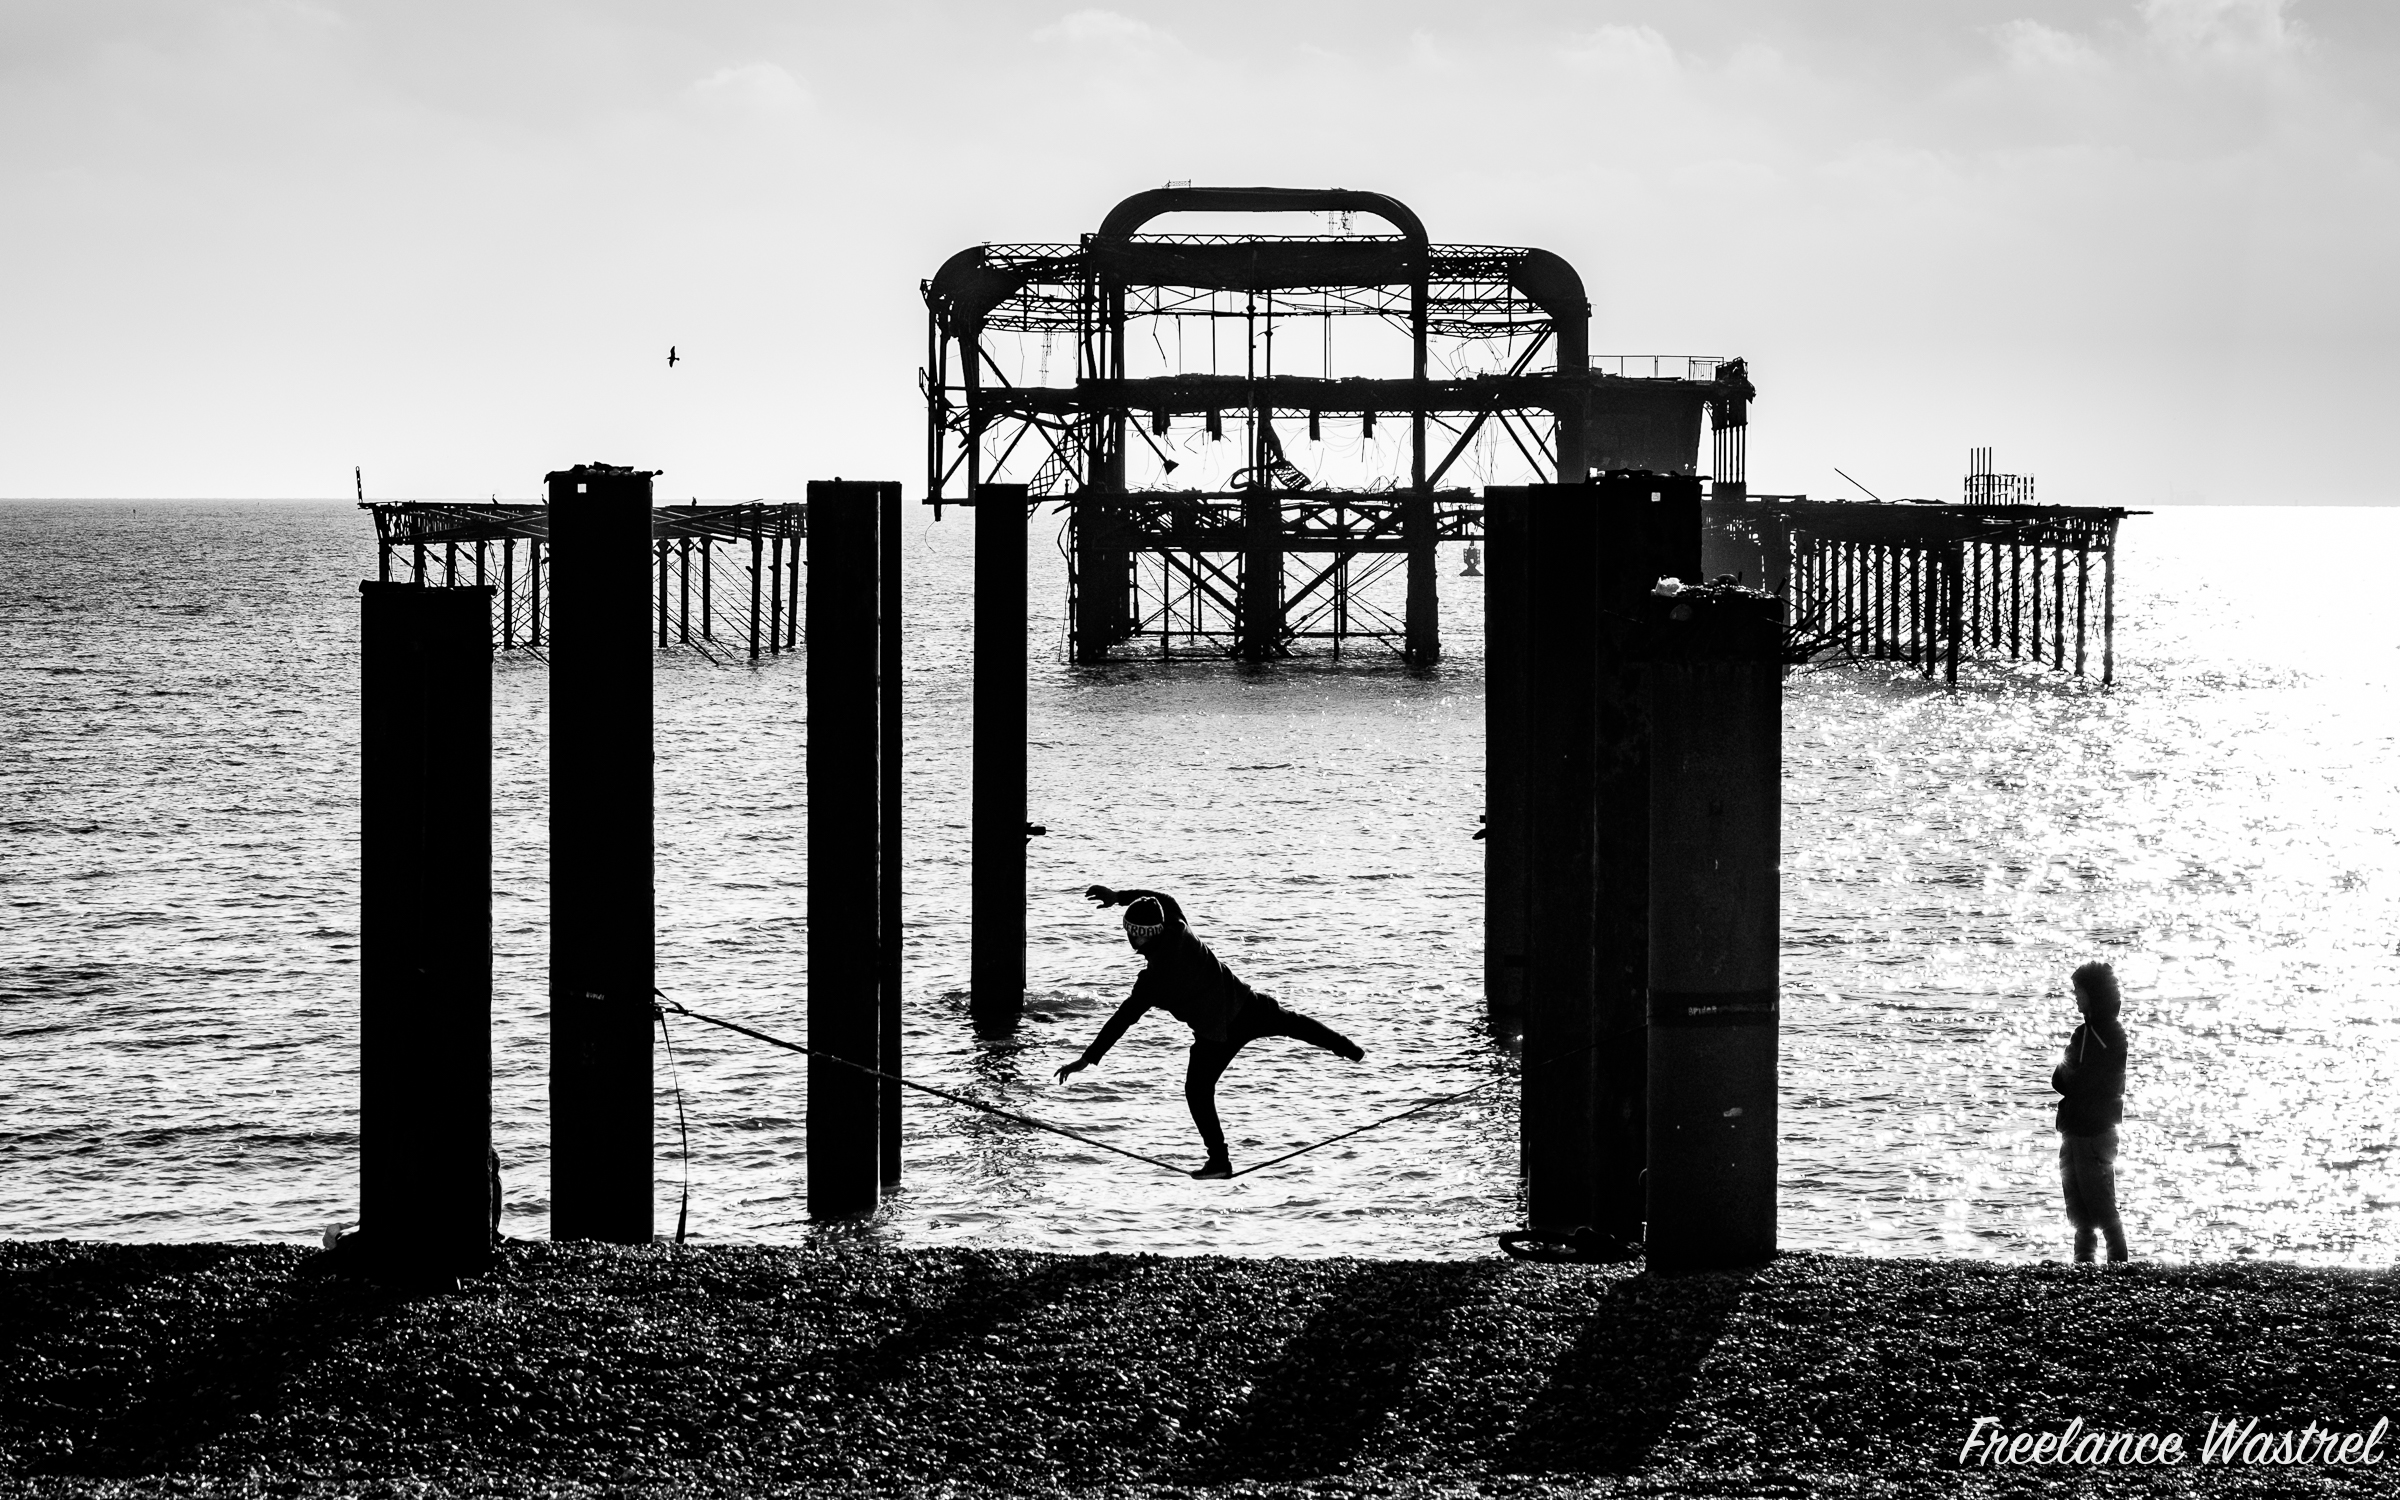 Tightrope practise, Brighton